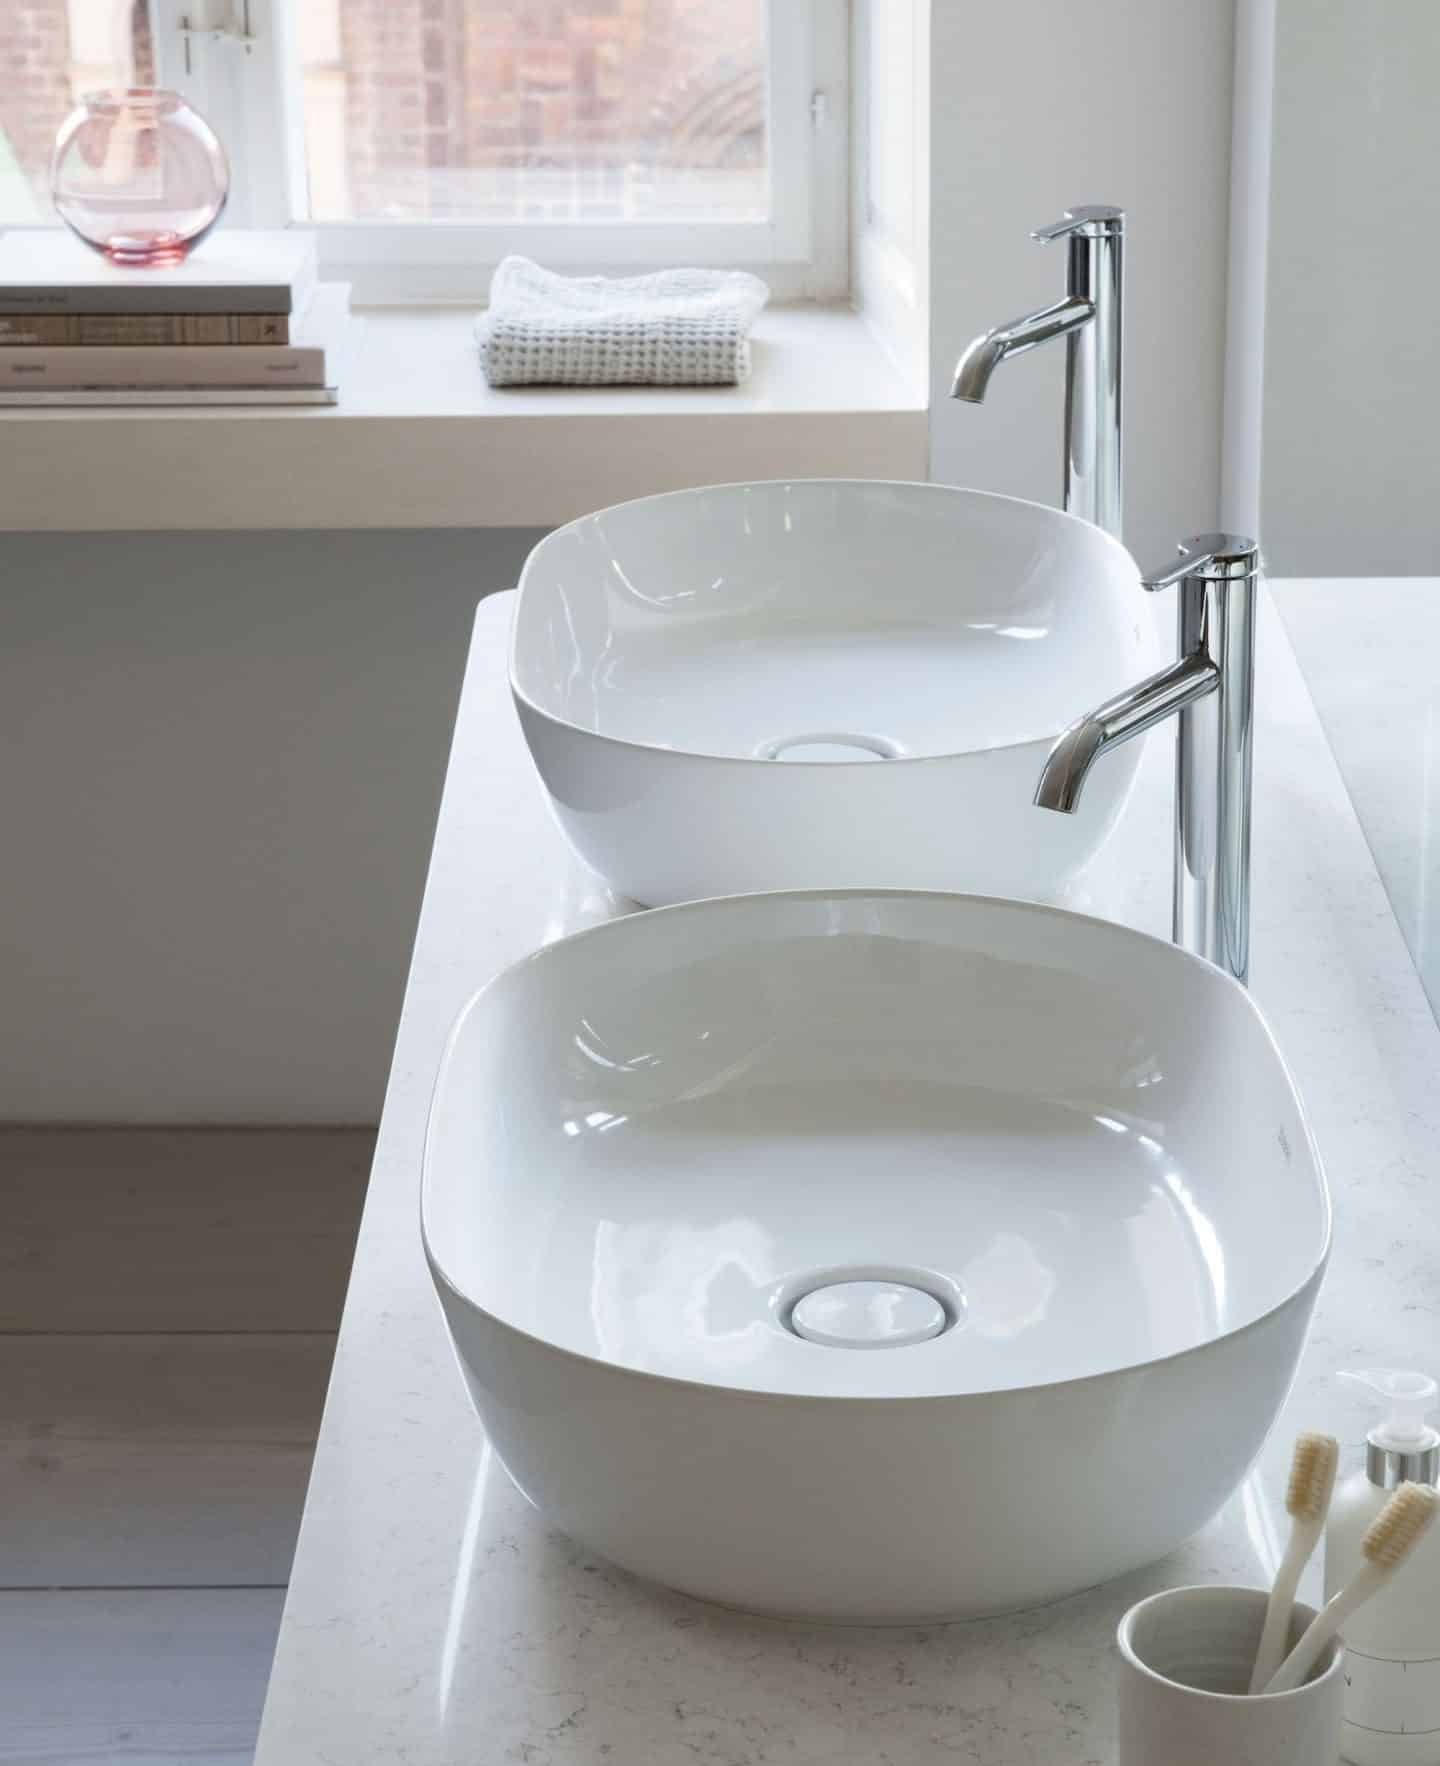 His and hers basins from The Luv collection by luxury bathroom brand Duravit.